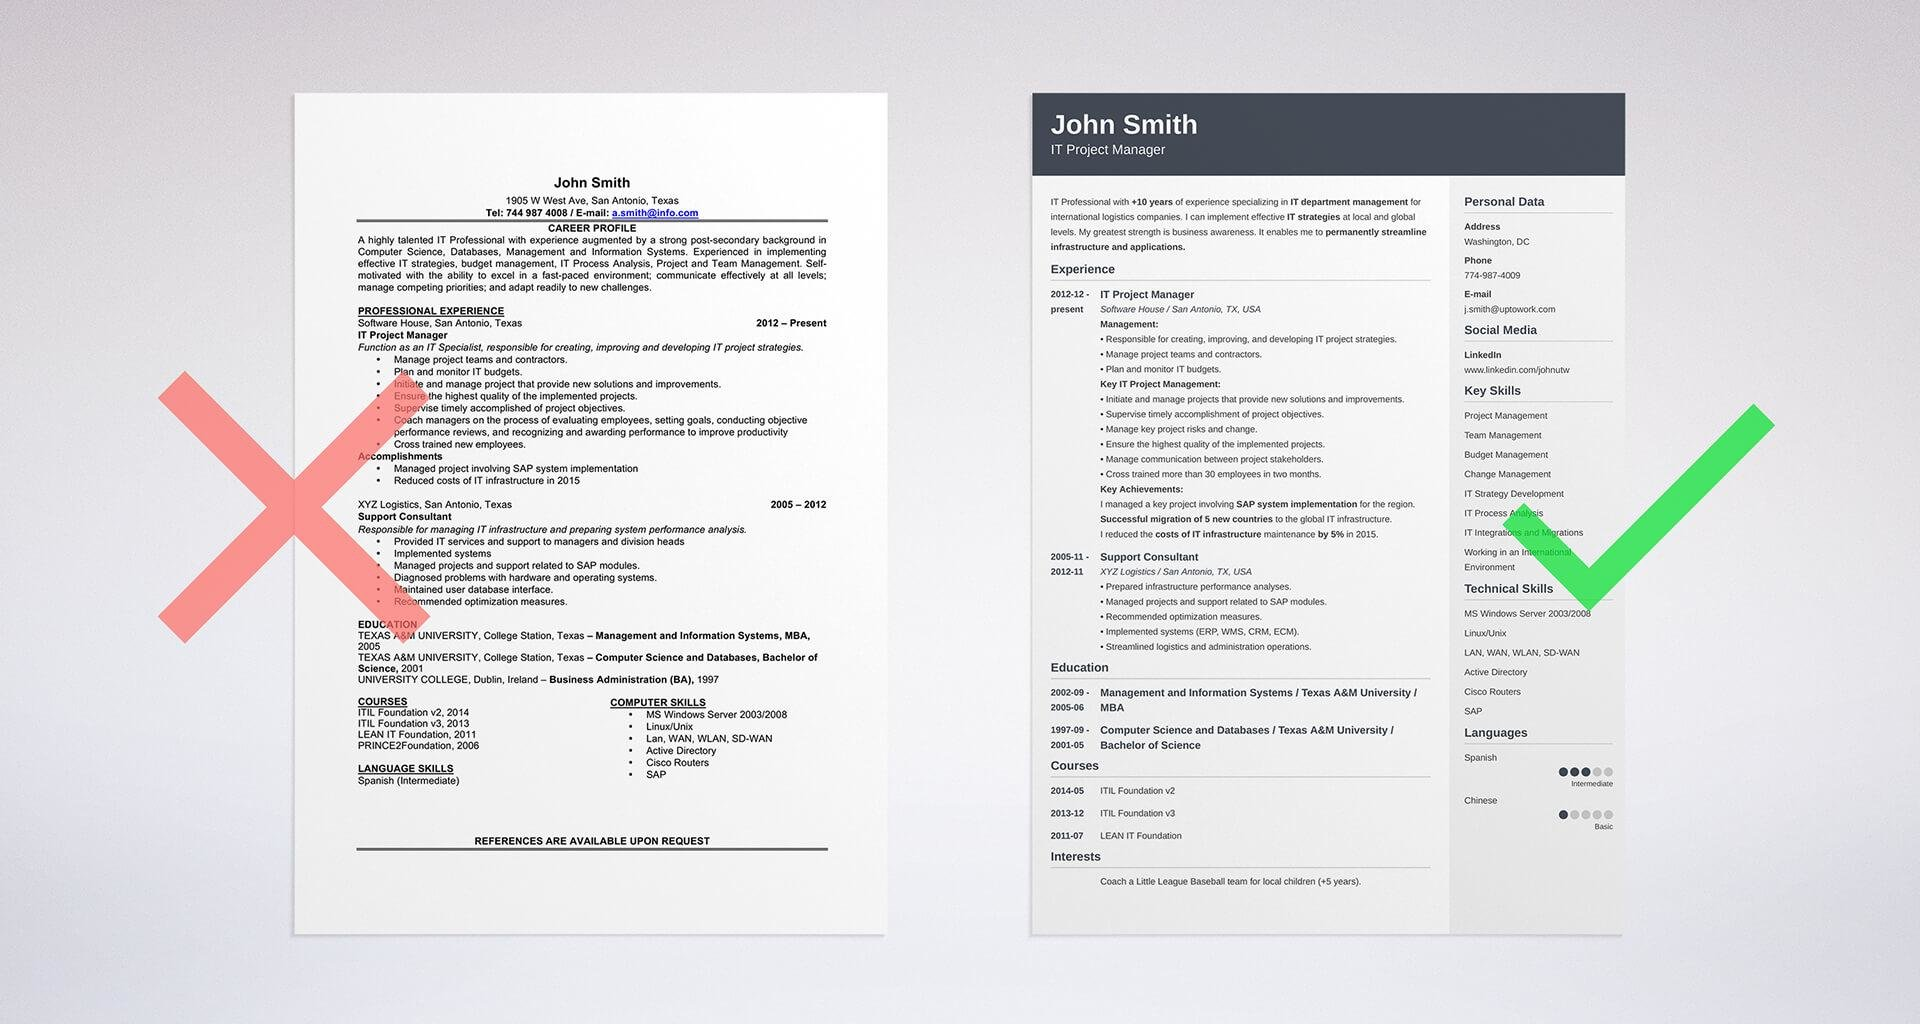 Word vs PDF Resume: What is the Best Resume Format?